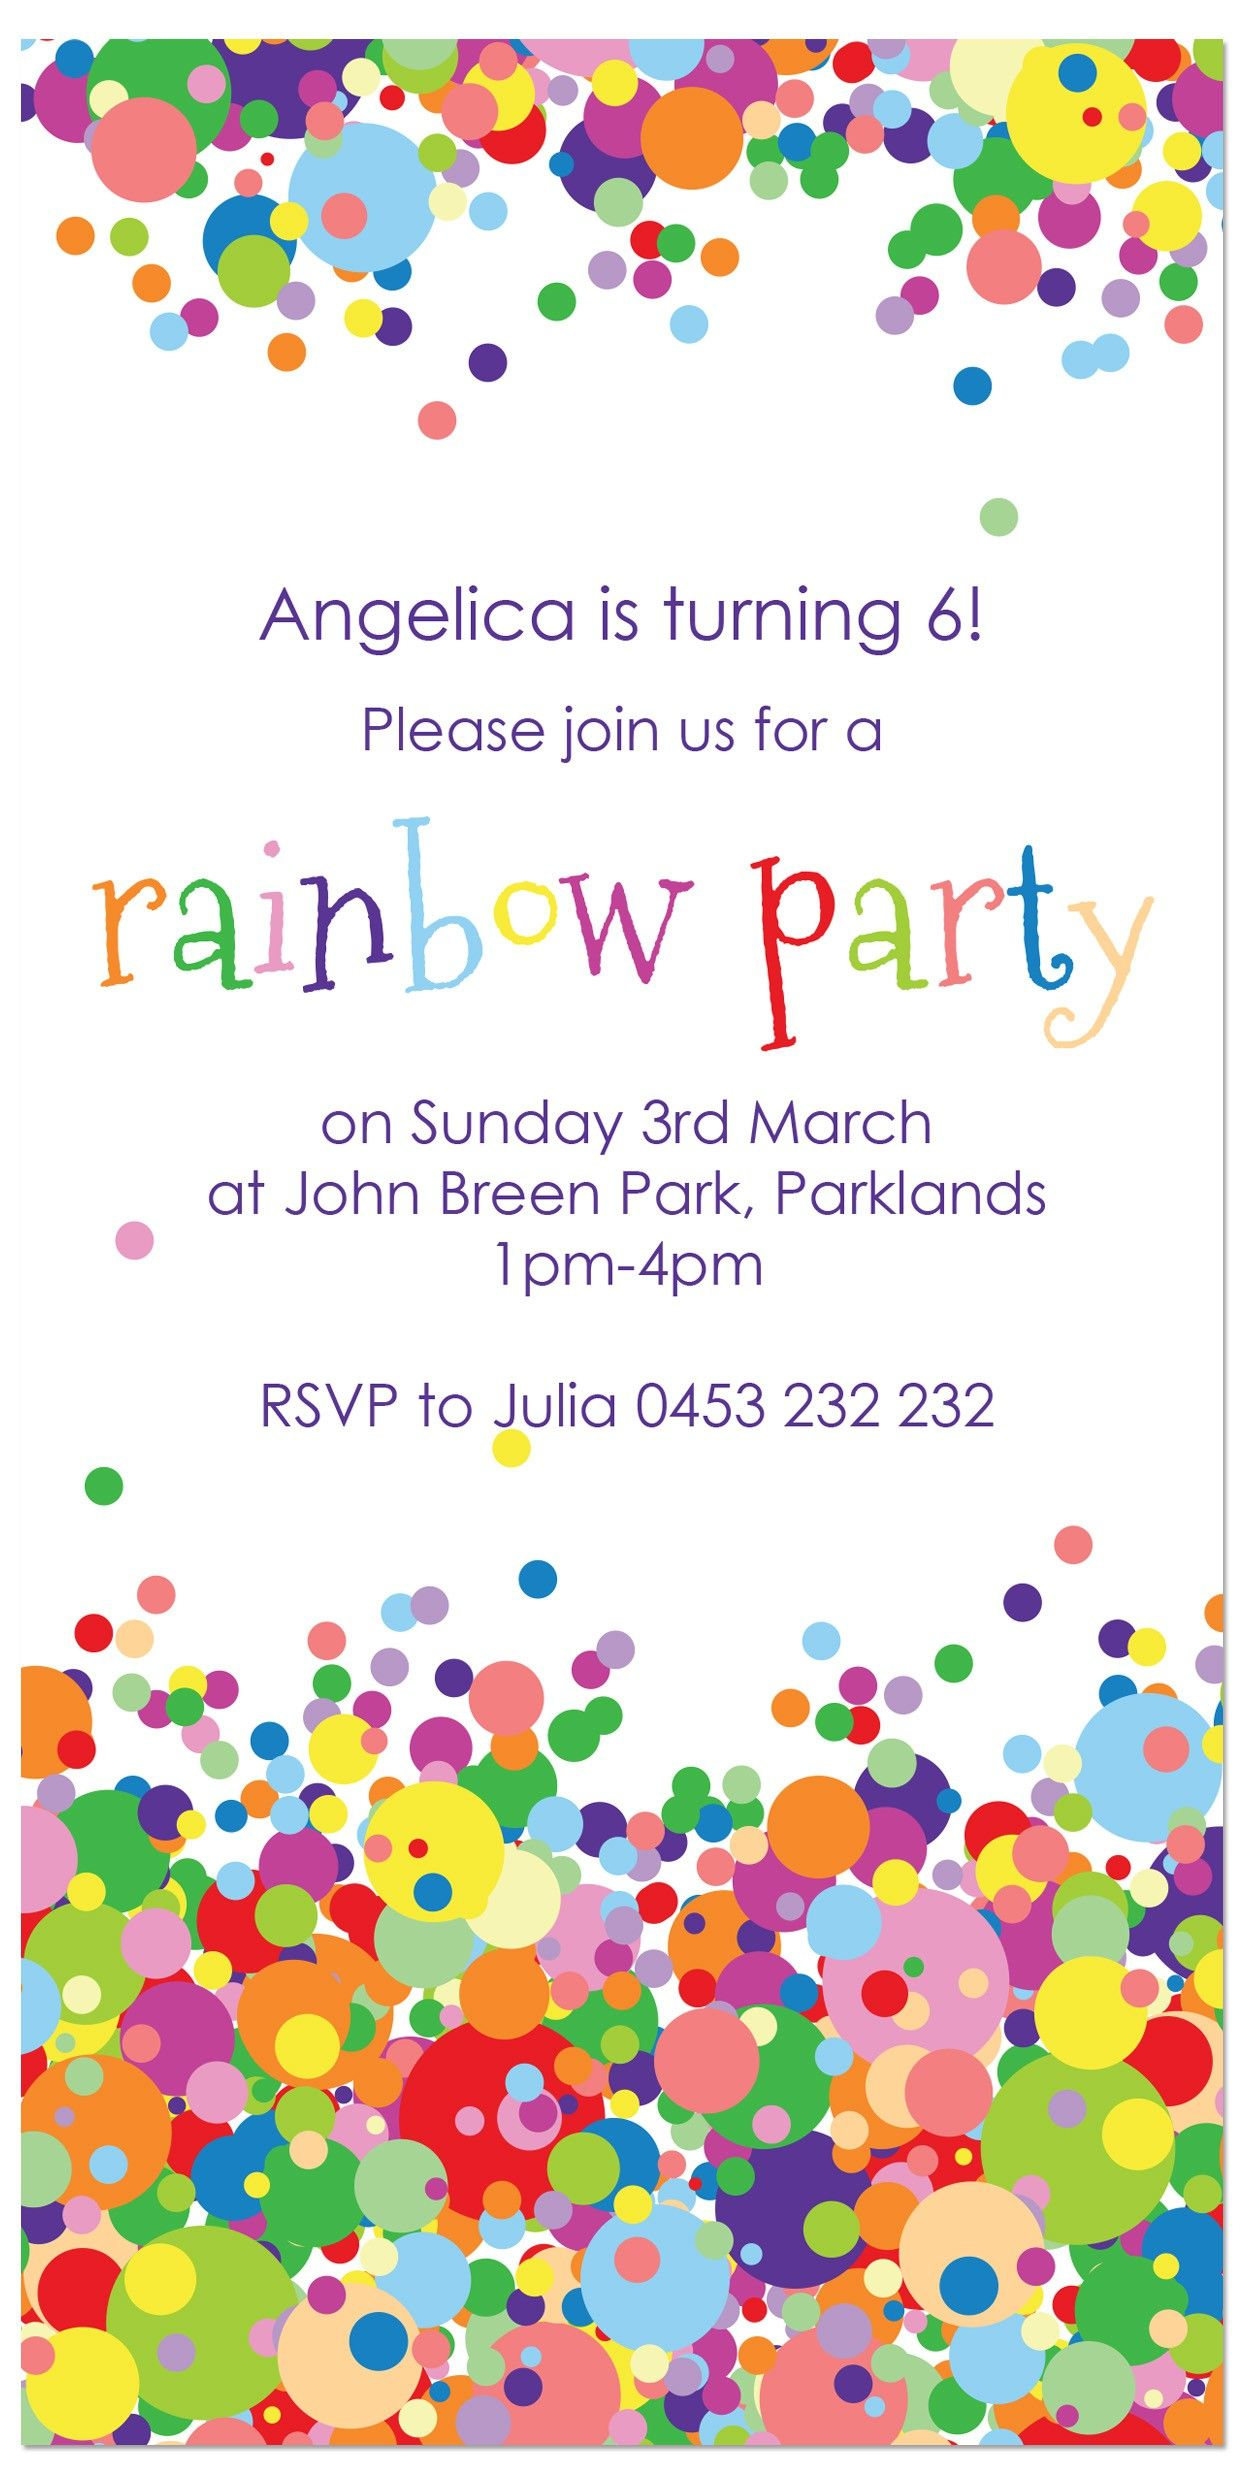 rainbow party invitation  google search  caroline's th birthday, party invitations